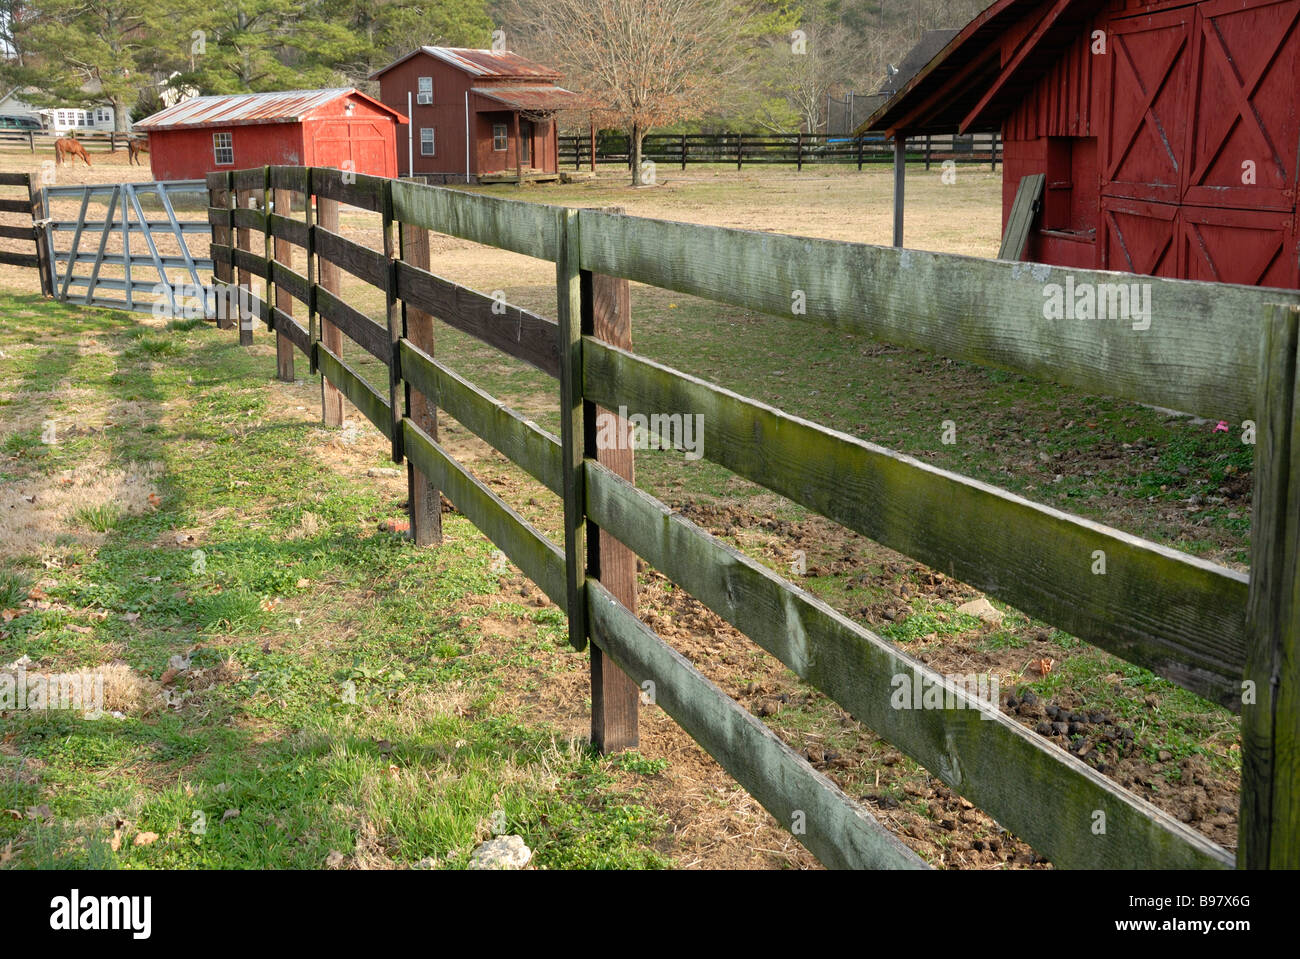 Barnyard And Fence Stock Photo 22916504